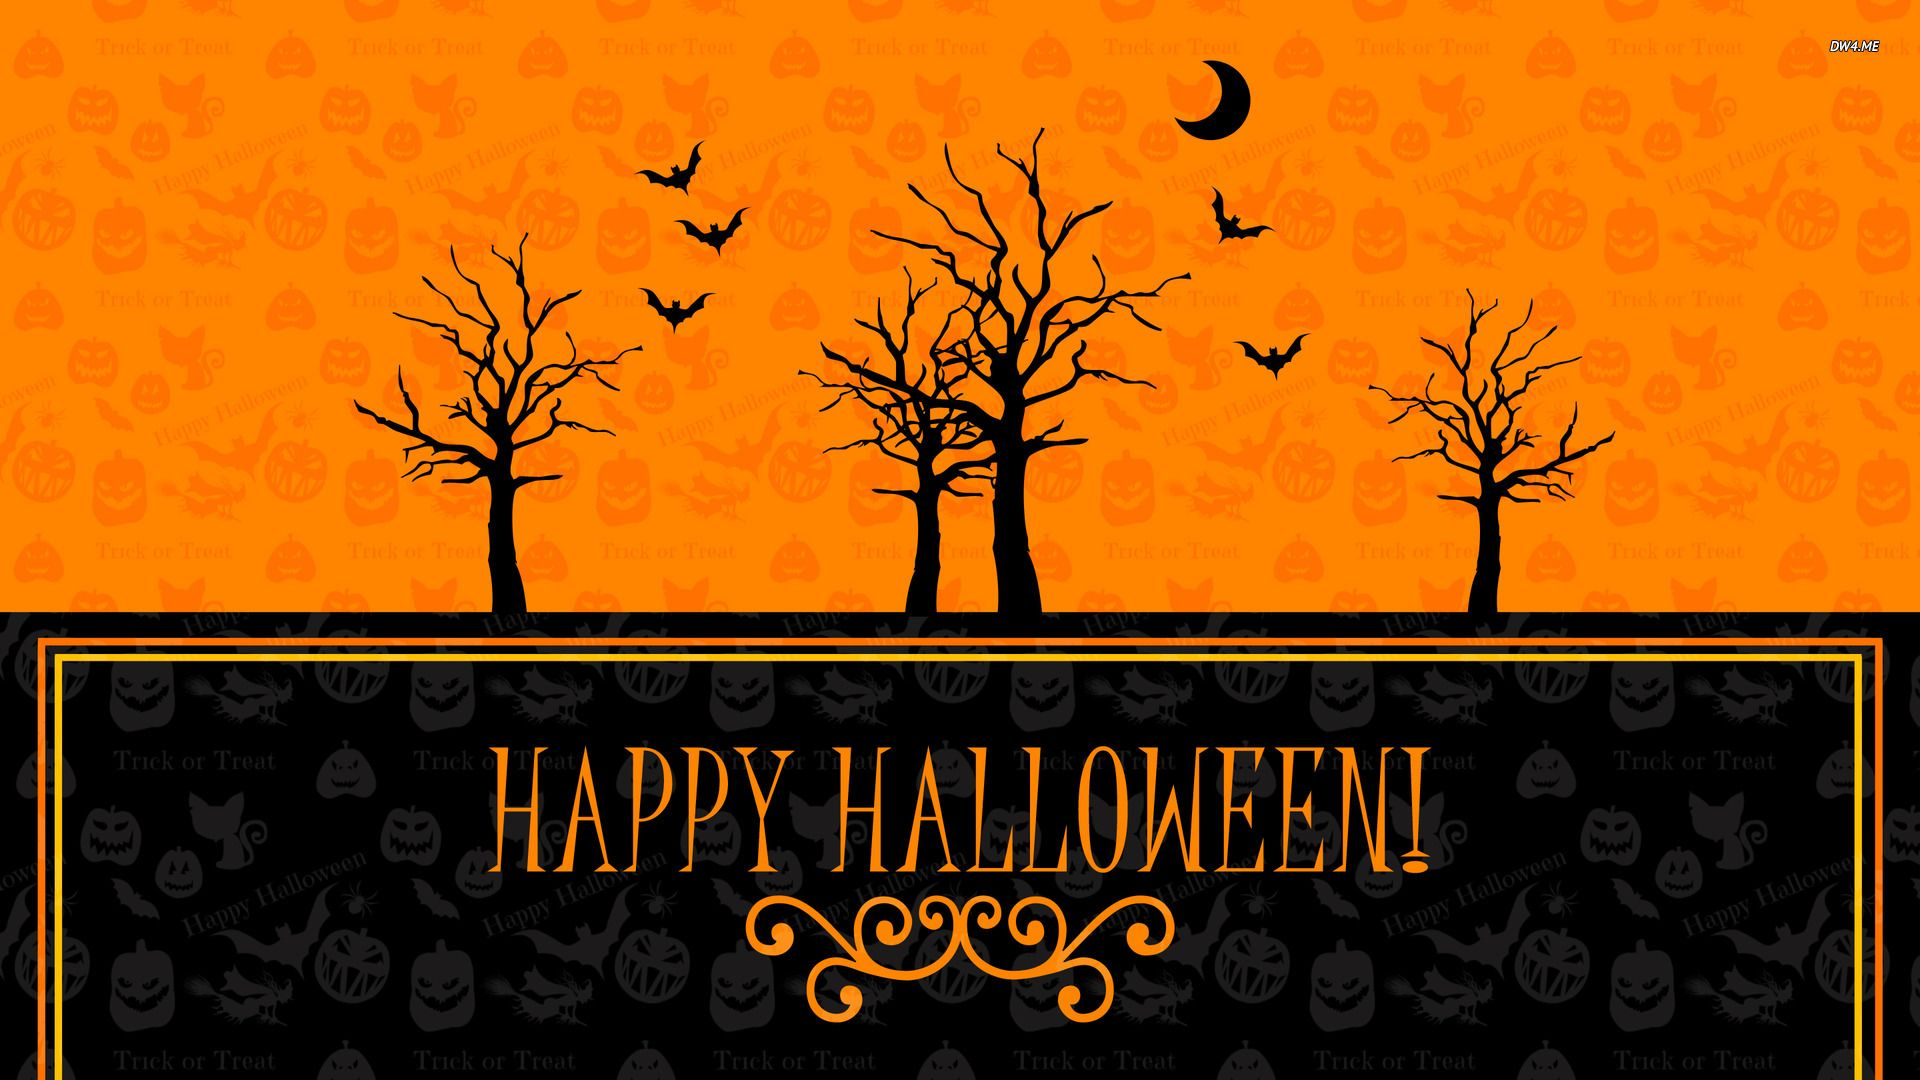 Halloween Hd Desktop Wallpaper Flip Wallpapers Download Free Wallpaper Hd Halloween Wallpaper Halloween Desktop Wallpaper Happy Halloween Quotes